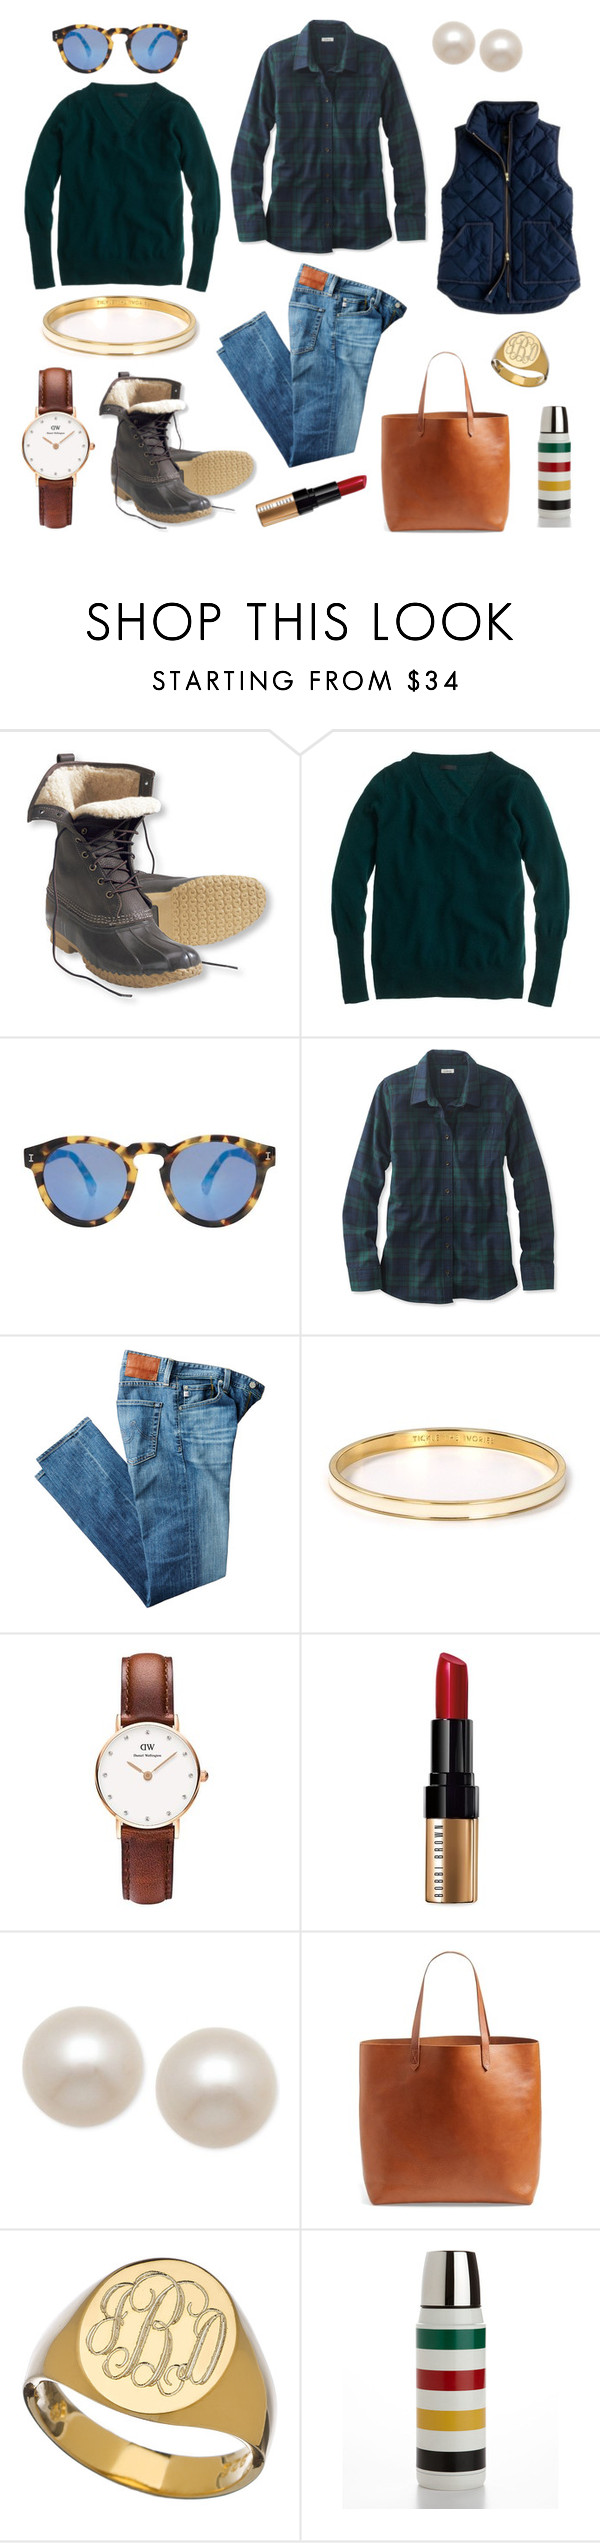 """Plaid, Flannel, Stripes and Bean Boots"" by pinkngreennblack ❤ liked on Polyvore featuring L.L.Bean, J.Crew, Illesteva, AG Adriano Goldschmied, Kate Spade, Daniel Wellington, Bobbi Brown Cosmetics, Honora, Madewell and Sarah Chloe"